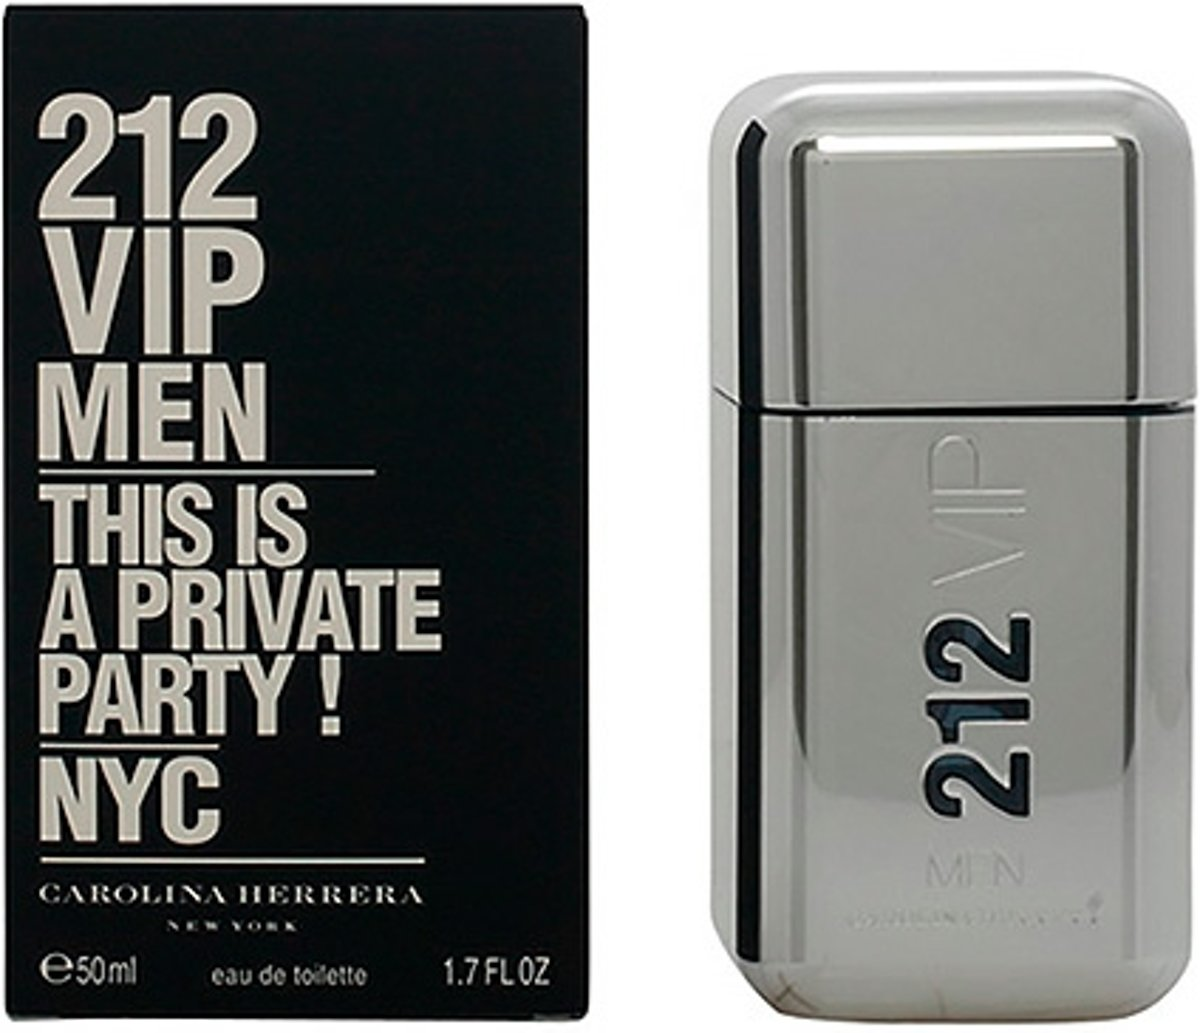 Carolina Herrera 212 Vip Men - 50 ml - Eau De Toilette